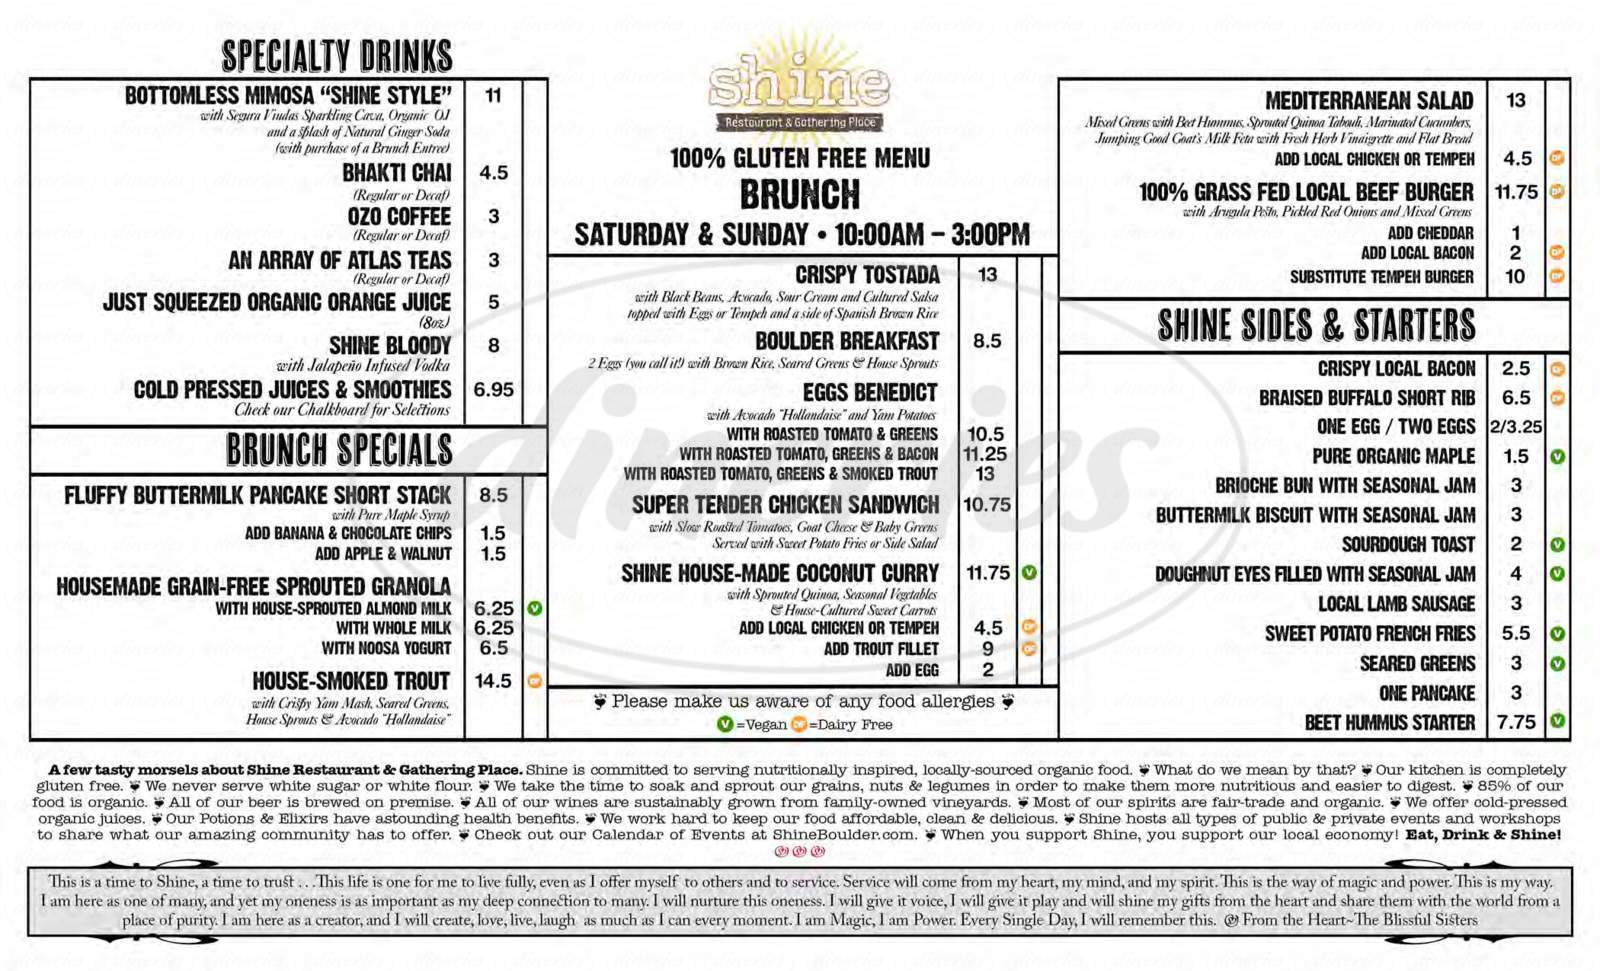 menu for Shine Restaurant & Gathering Place